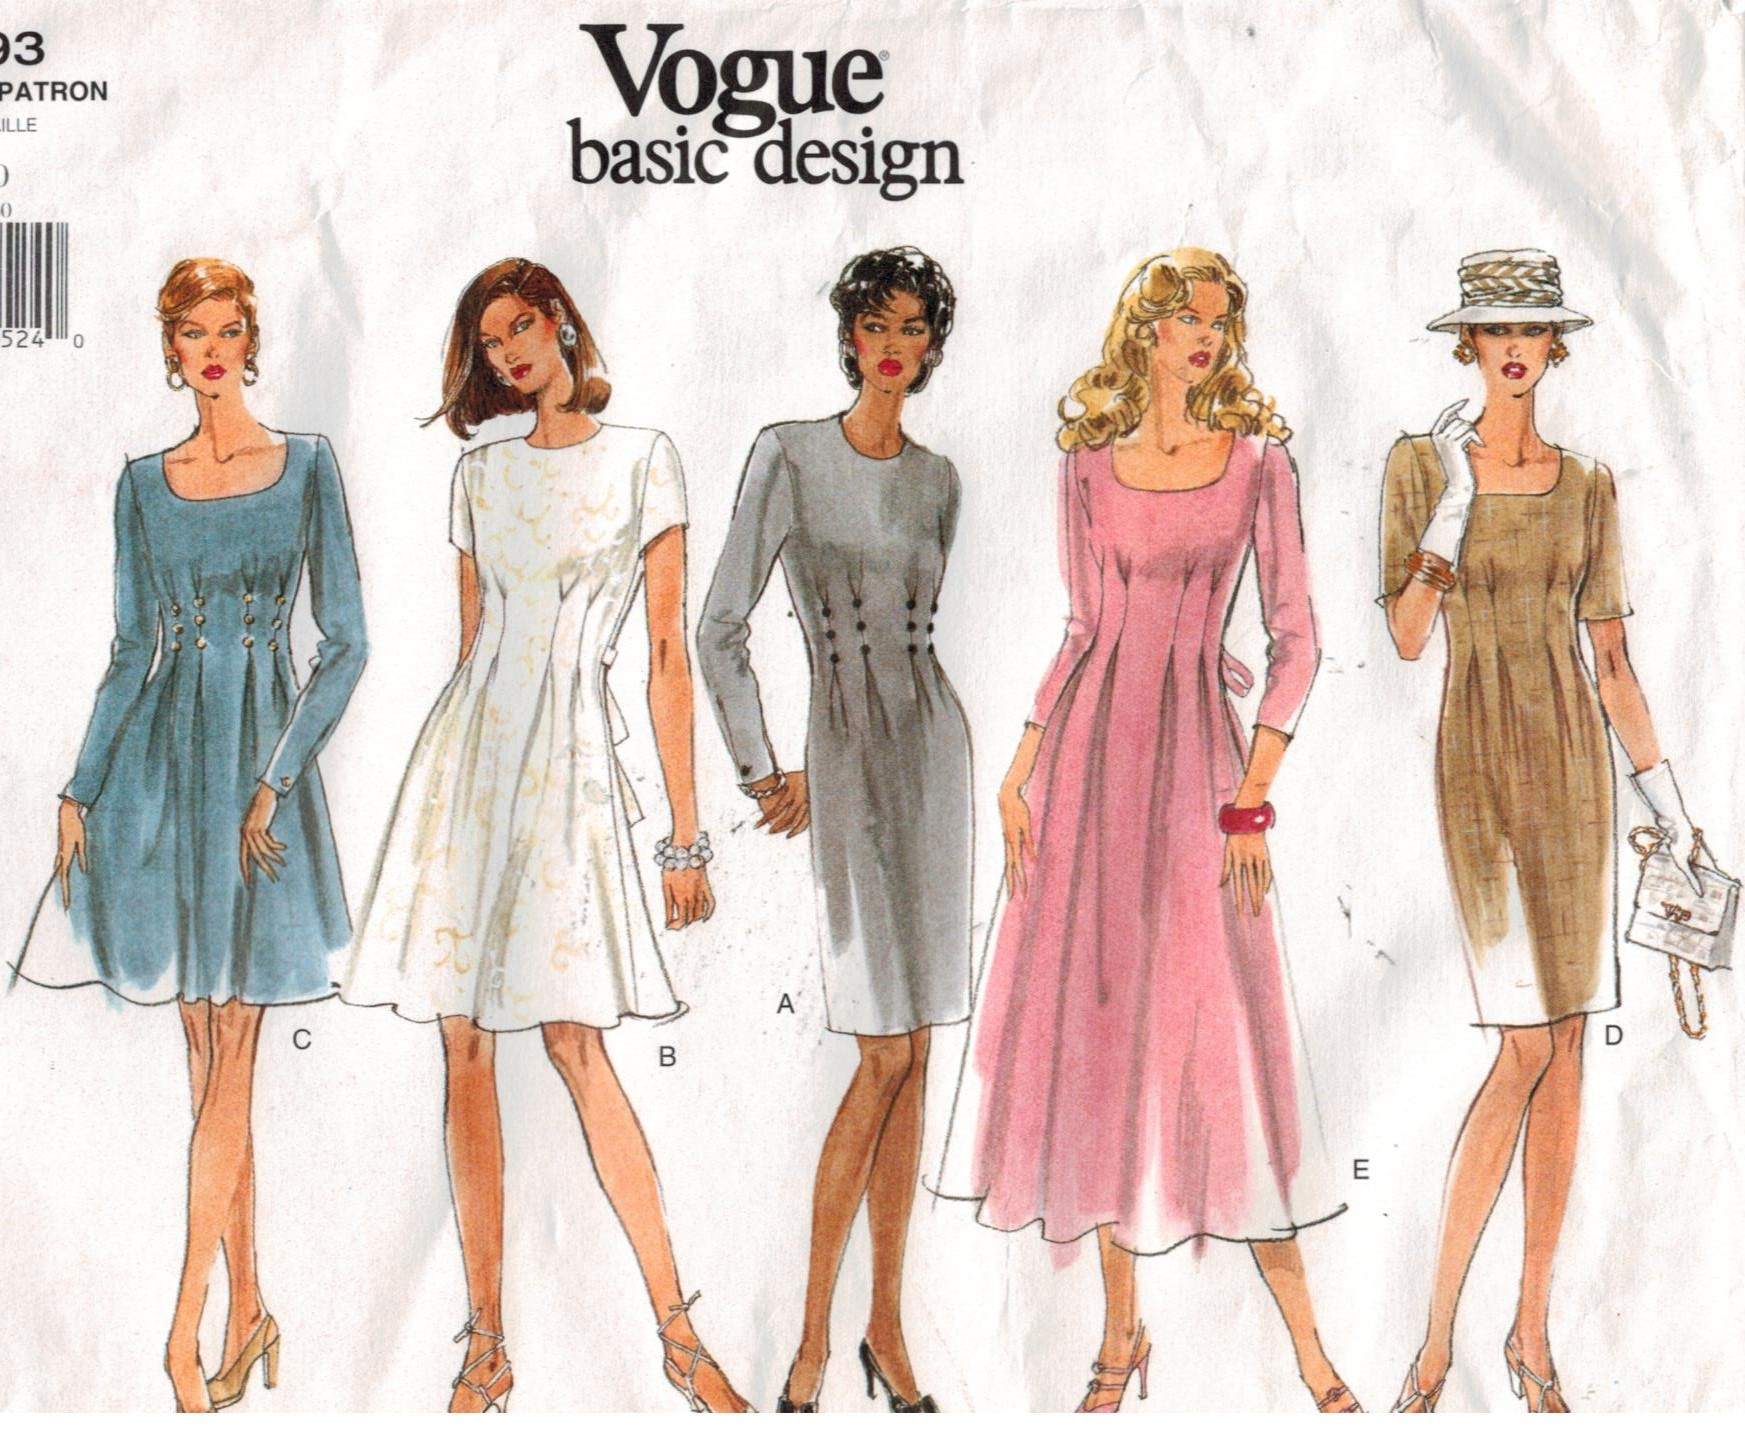 e8885e1bb2 Vogue Pattern 1593 Fit And Flare Dress With Tucks Sizes 6 8 10